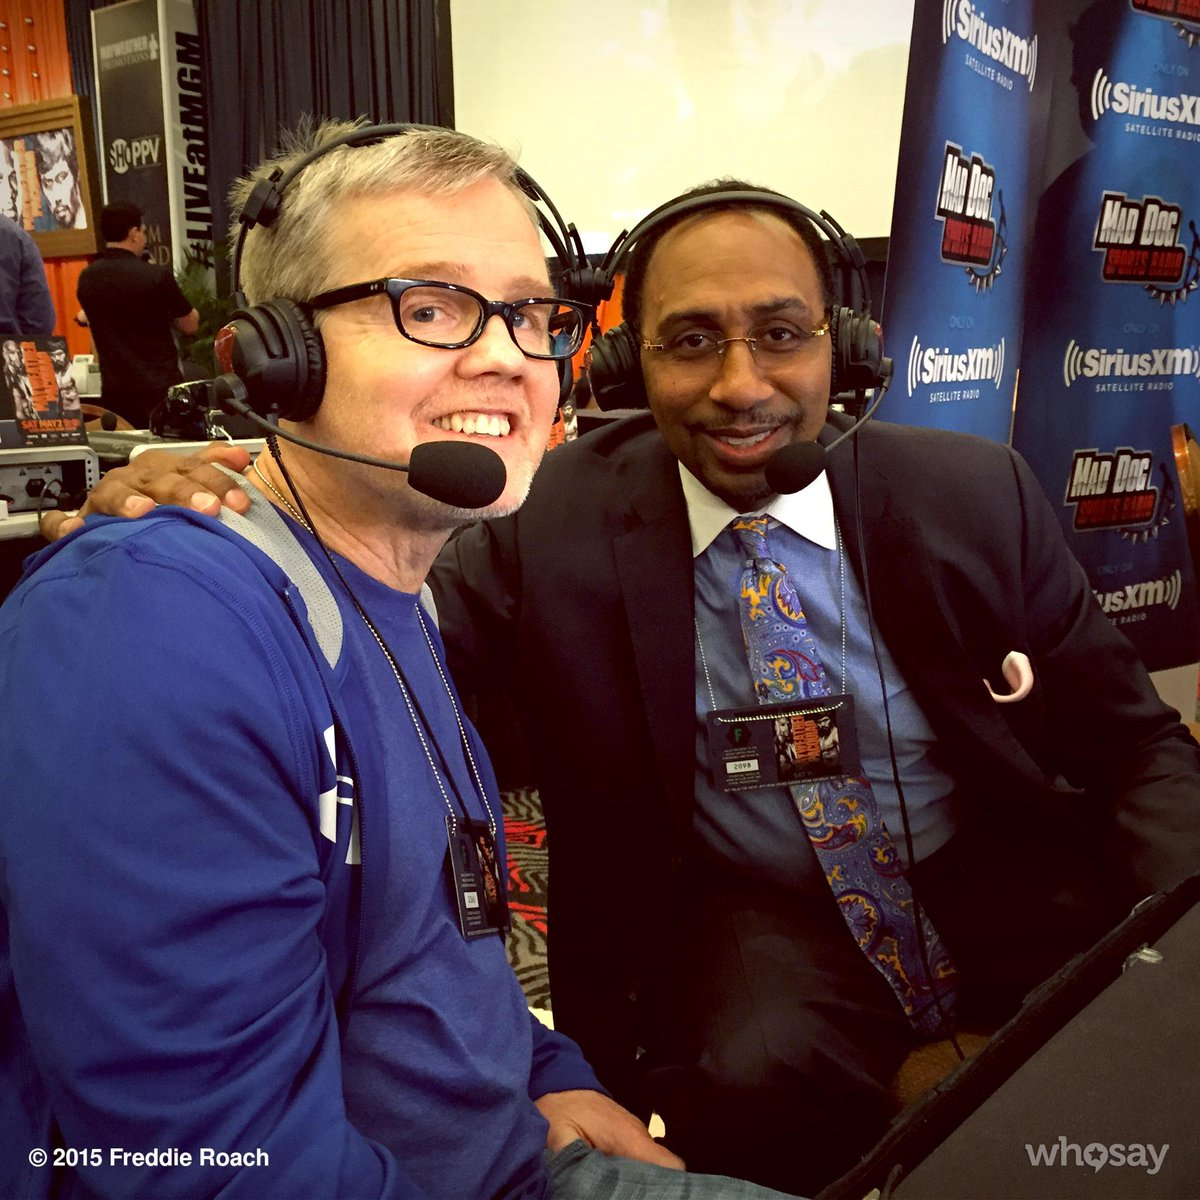 Doing radio row interviews with @stephenasmith #maypac http://t.co/IixFPDi3xA